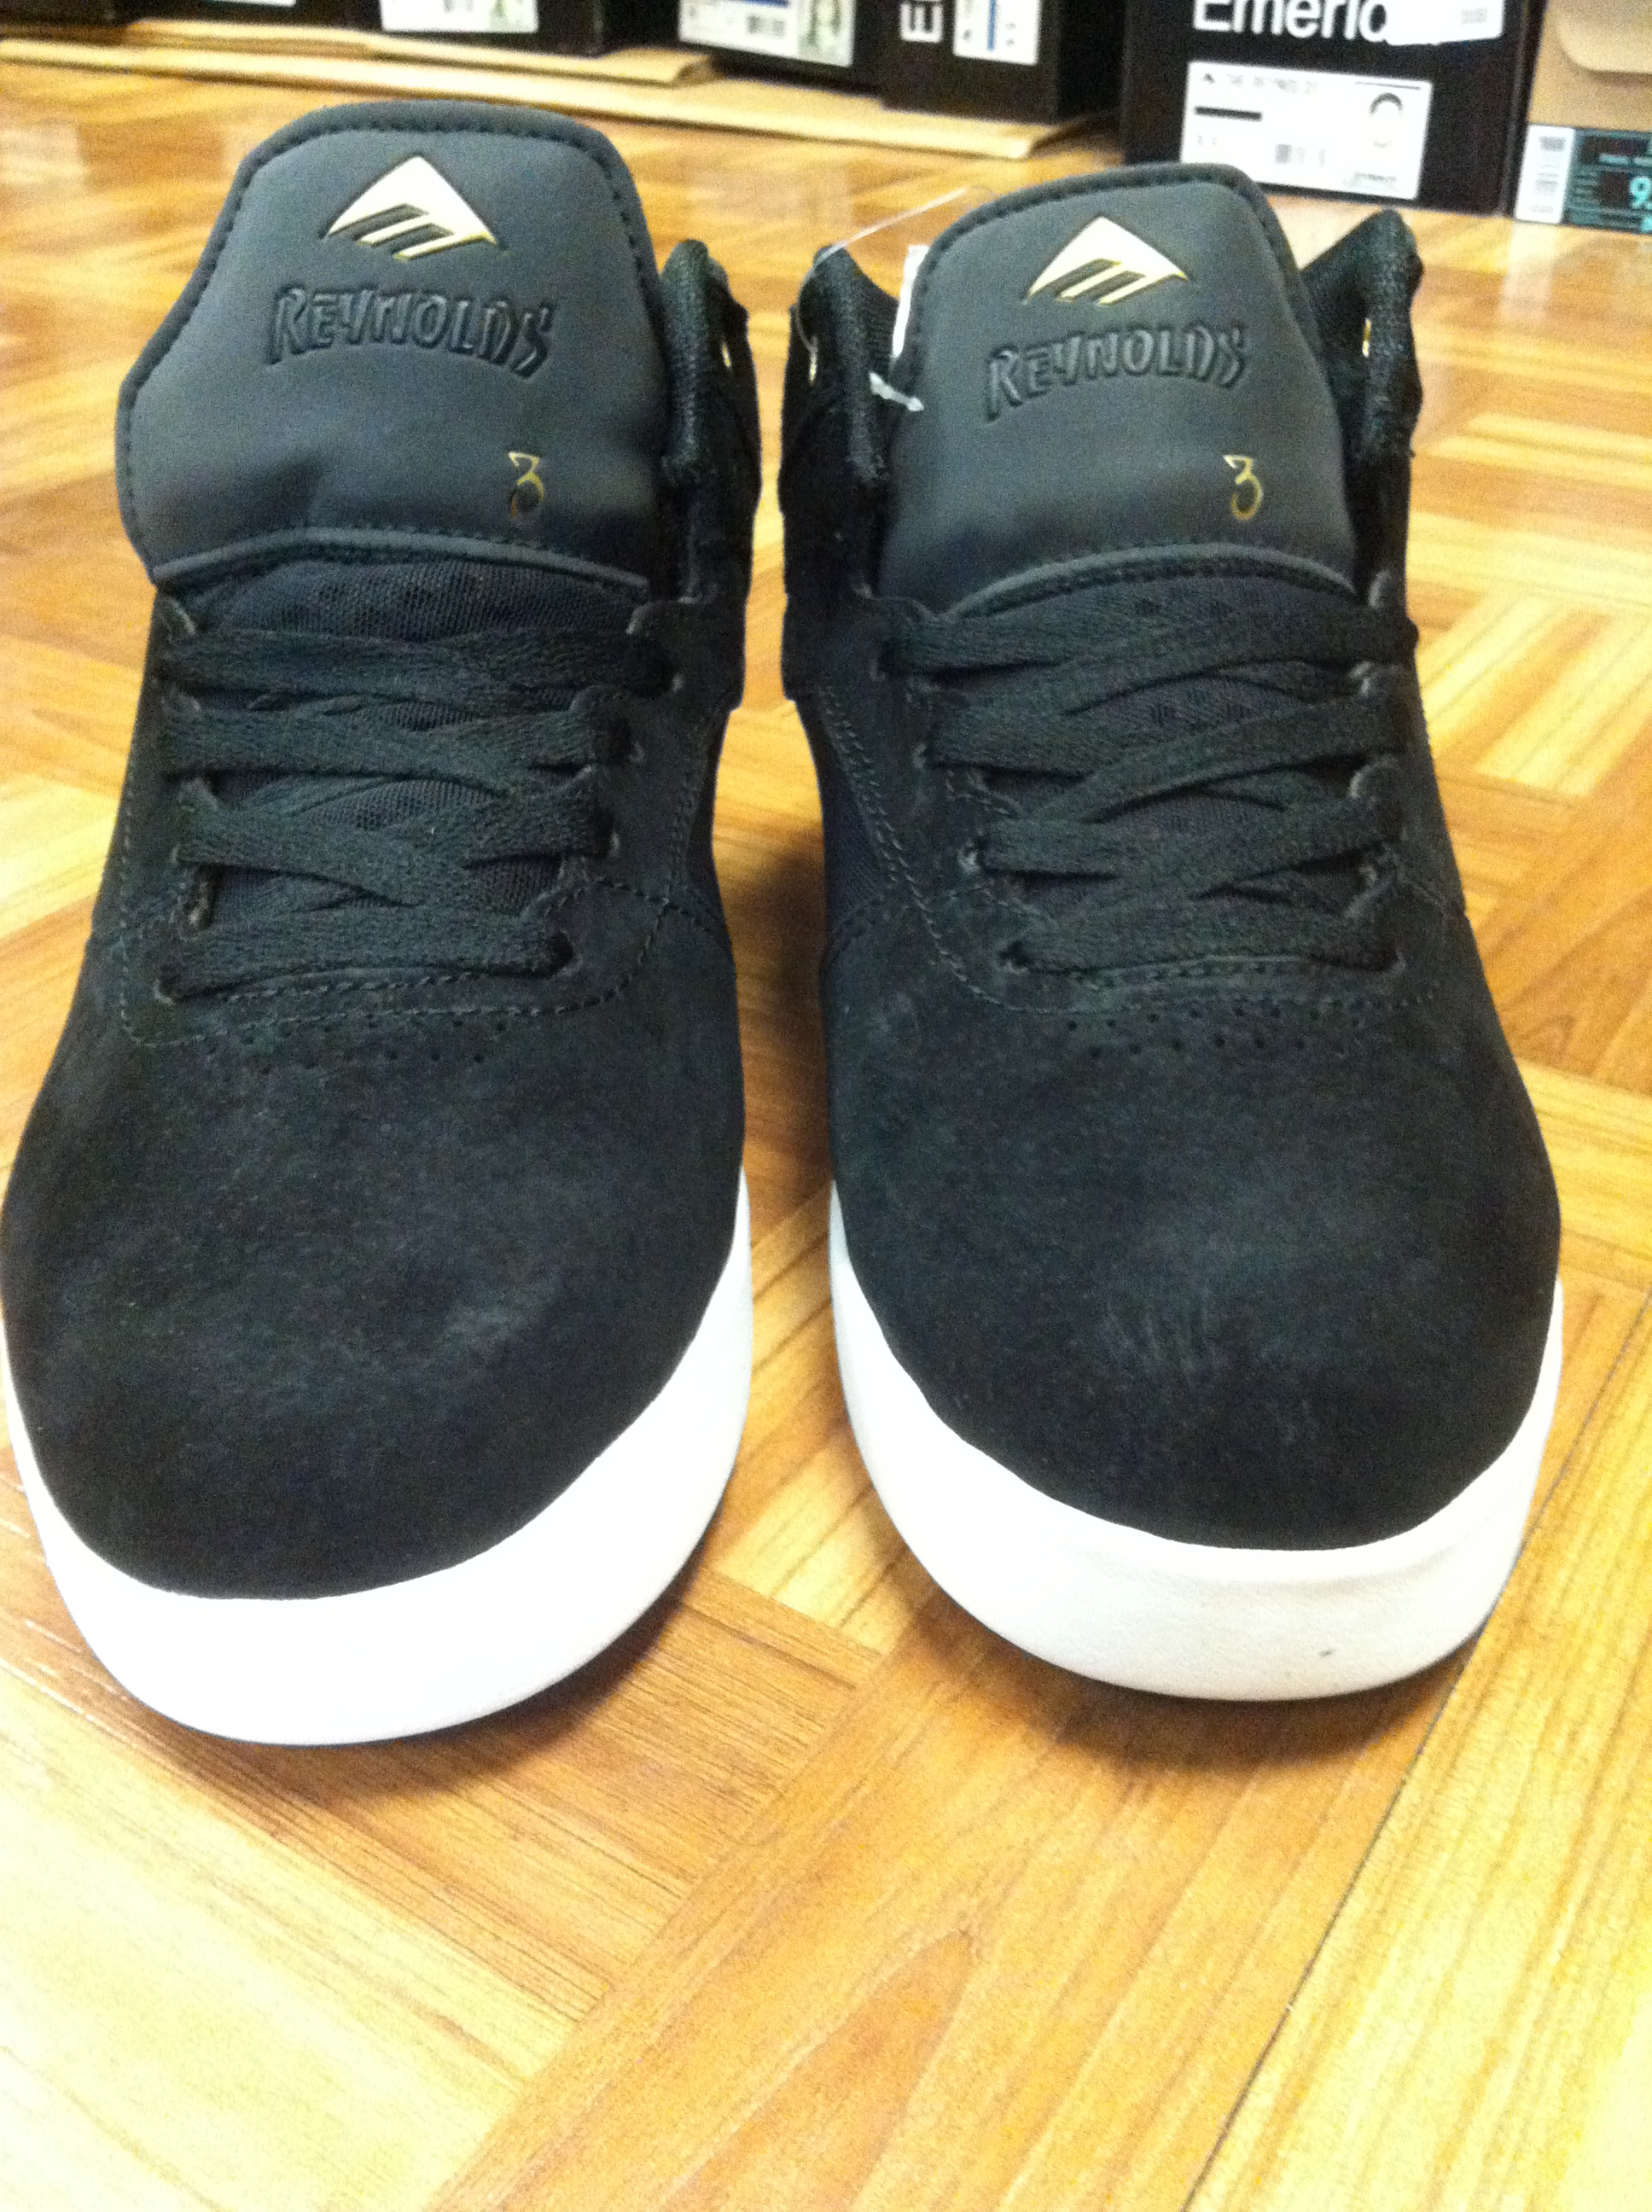 d7de5765169 Just Got In The New Emerica Andrew Reynolds 3 Mid Top In Black White.  Emerica has Really Stepped There Game Up On All The New Shoes.